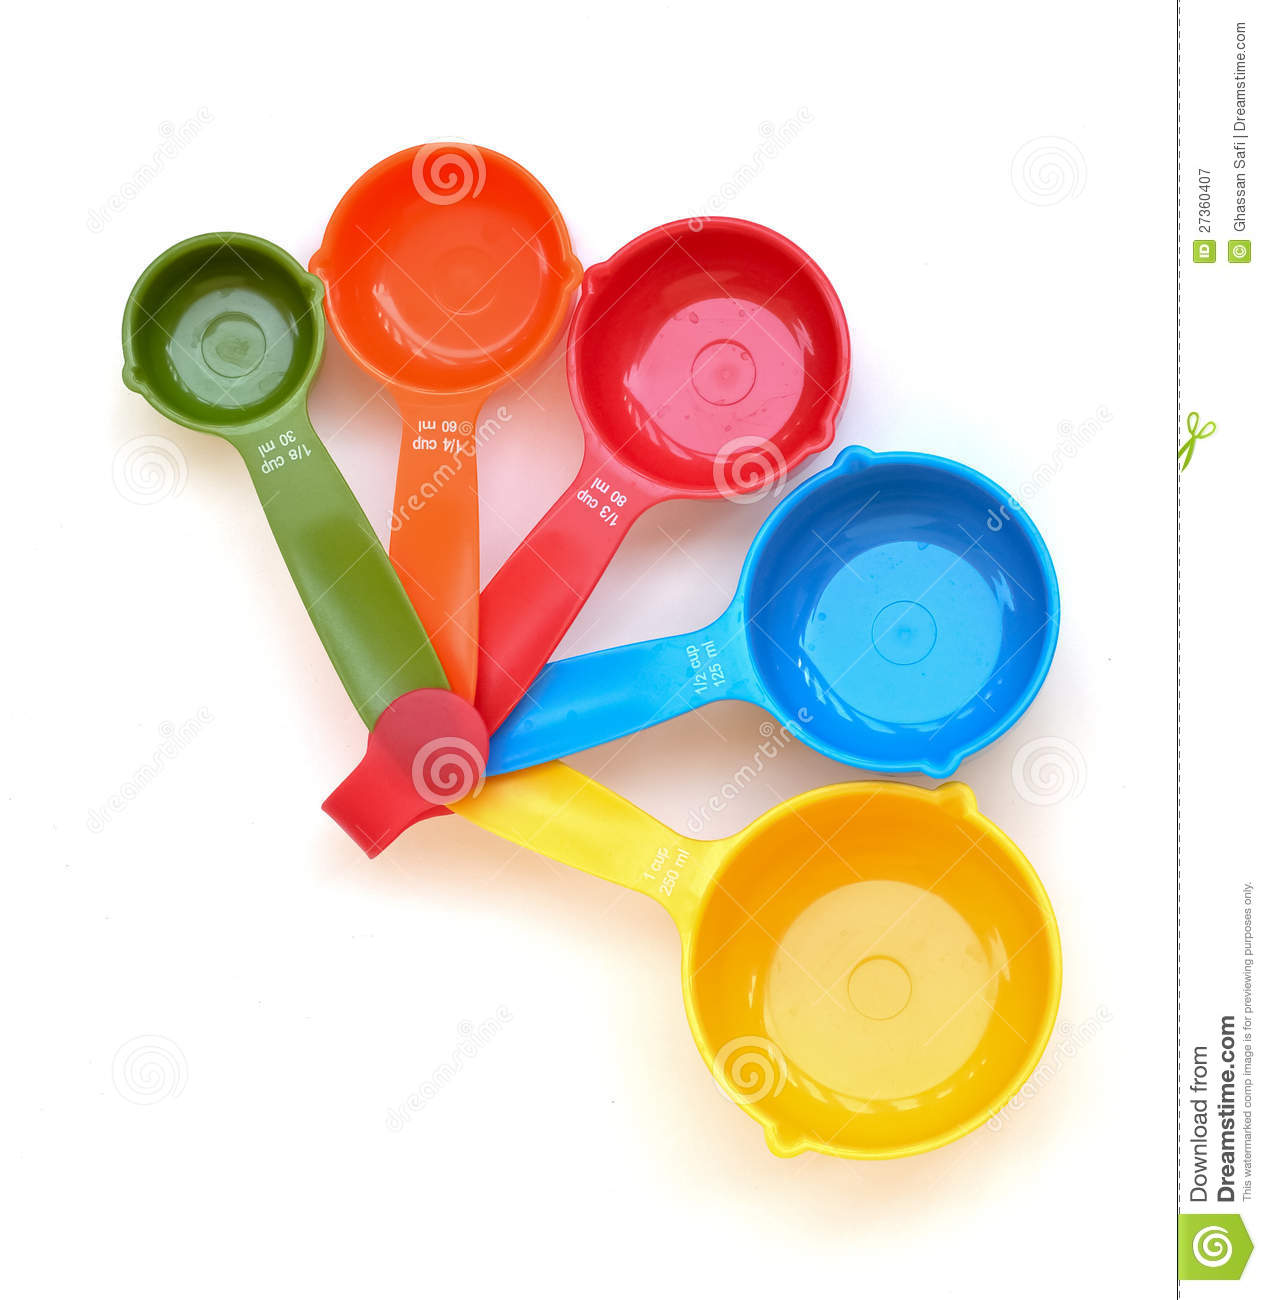 Dry Measuring Cup Clipart Colored Measuring Cups 27360407 Jpg